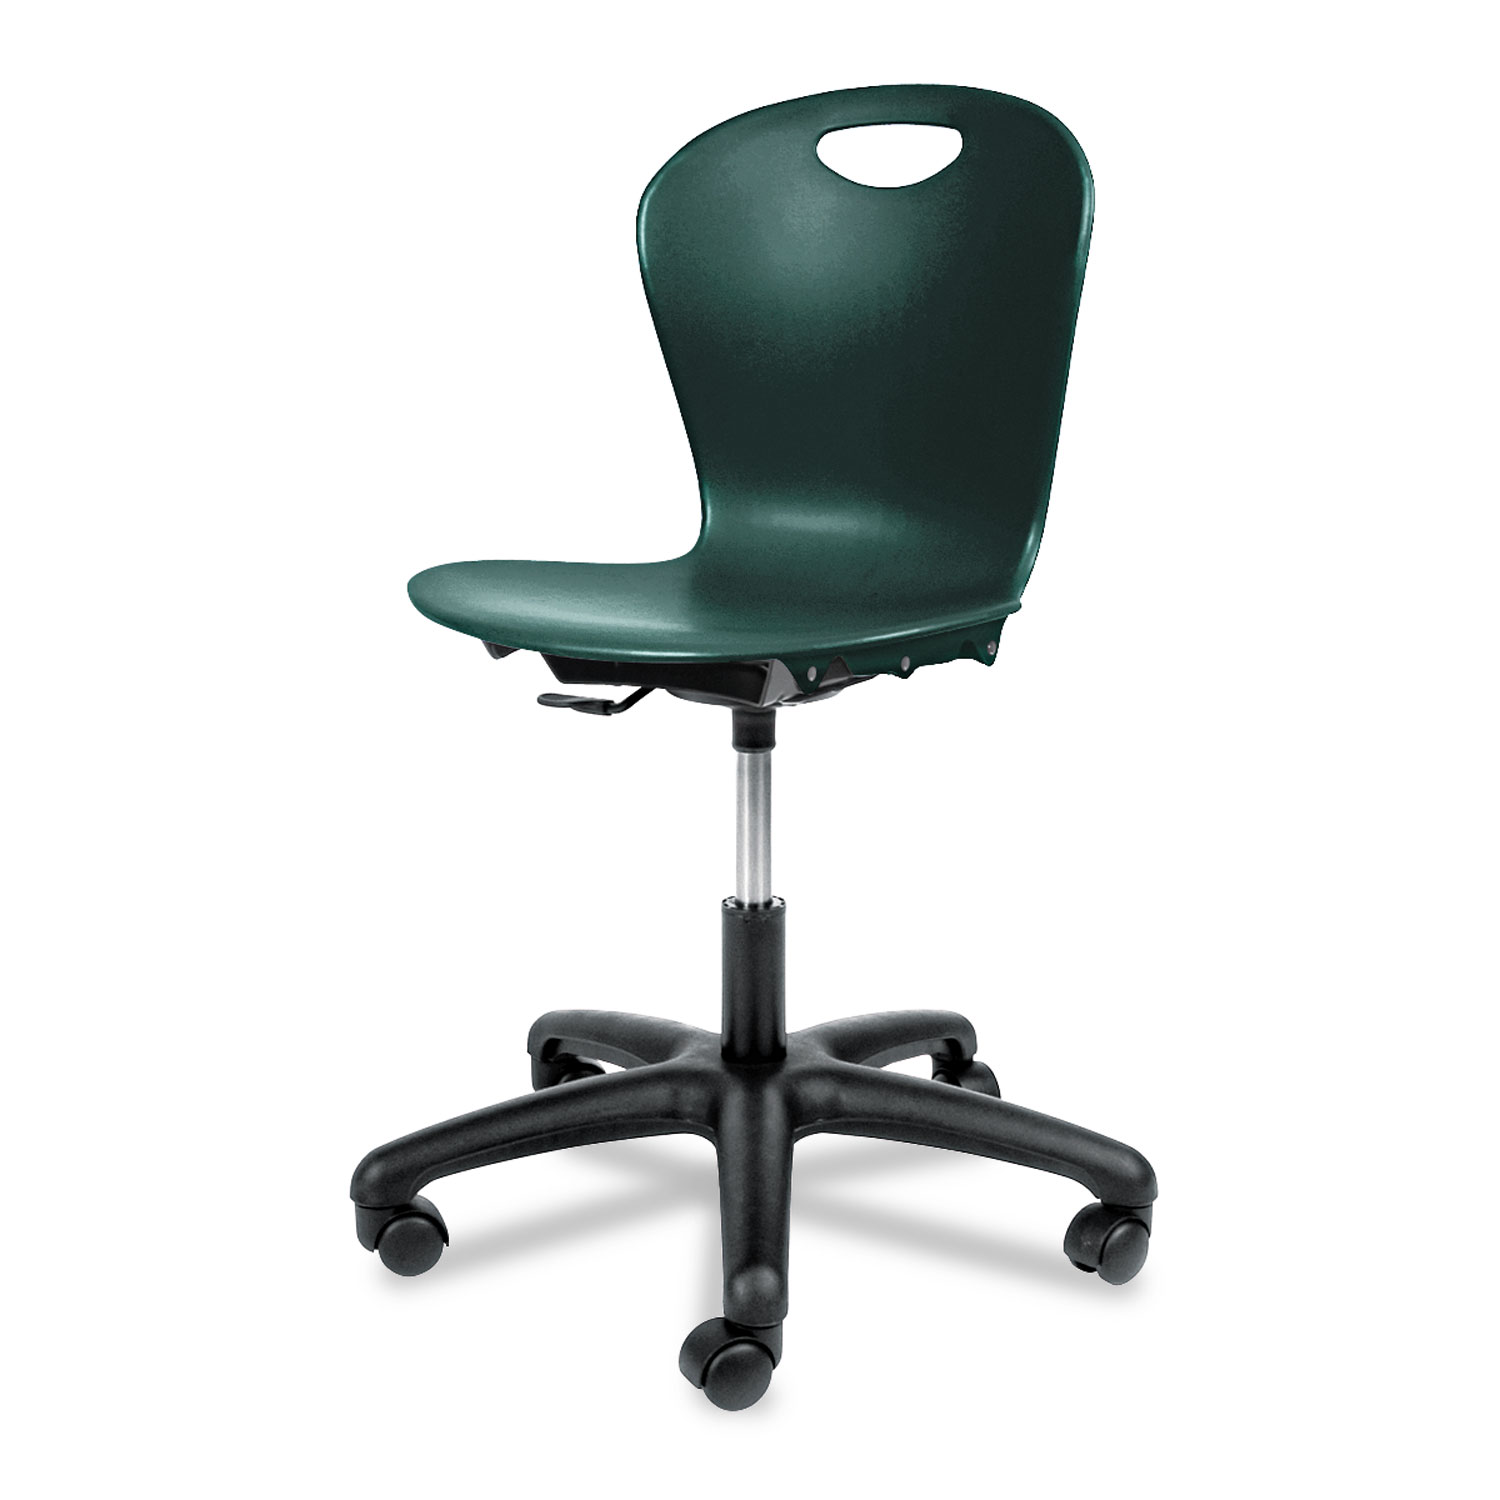 Adjustable Height Task Chair, Forest Green Seat/Forest Green Back, Black Base